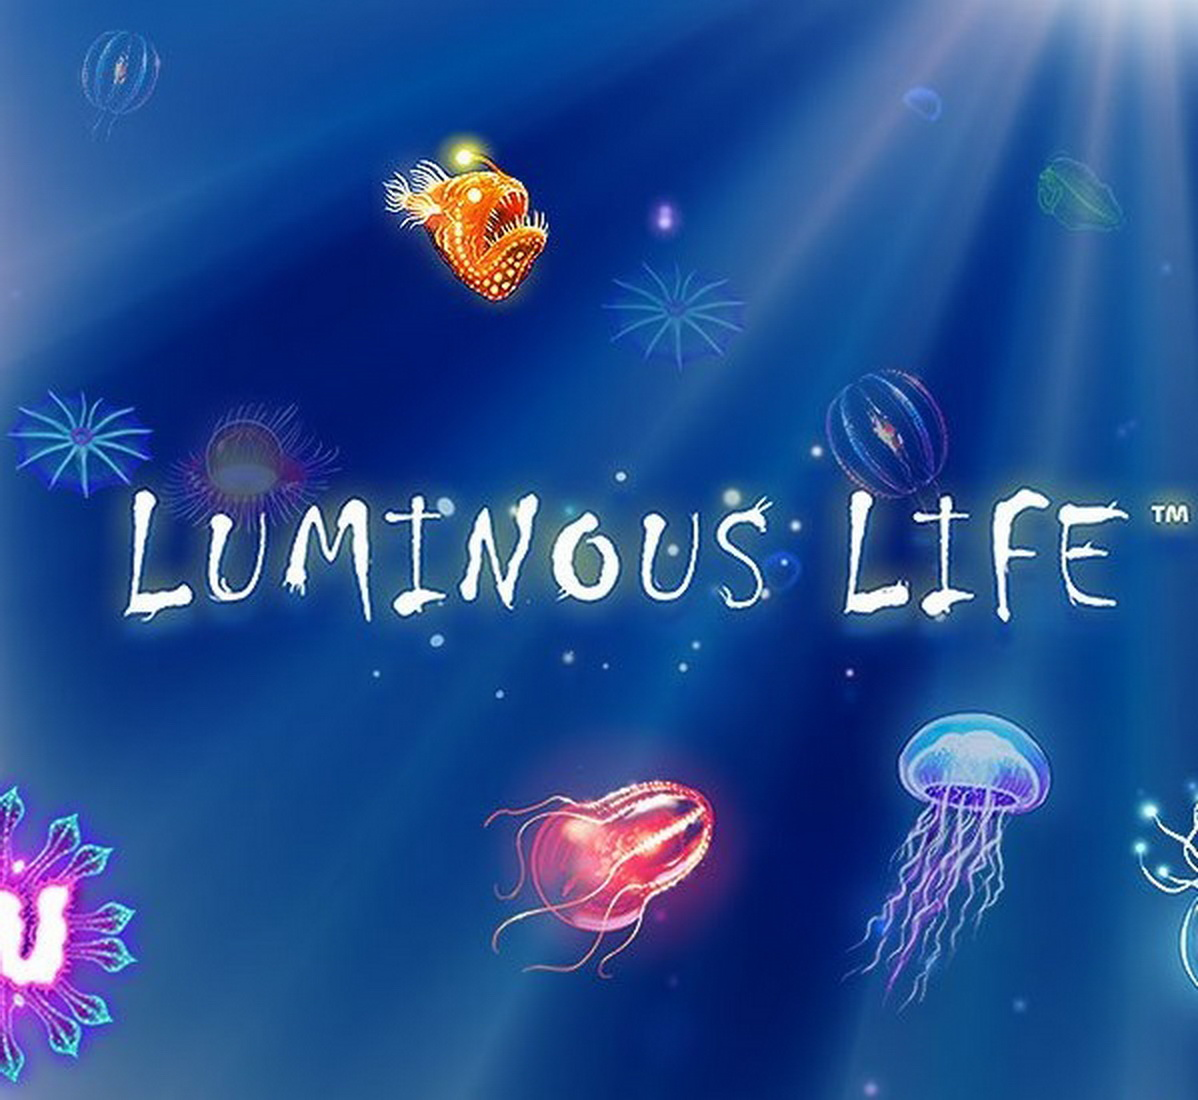 The Luminous Life Online Slot Demo Game by Playtech